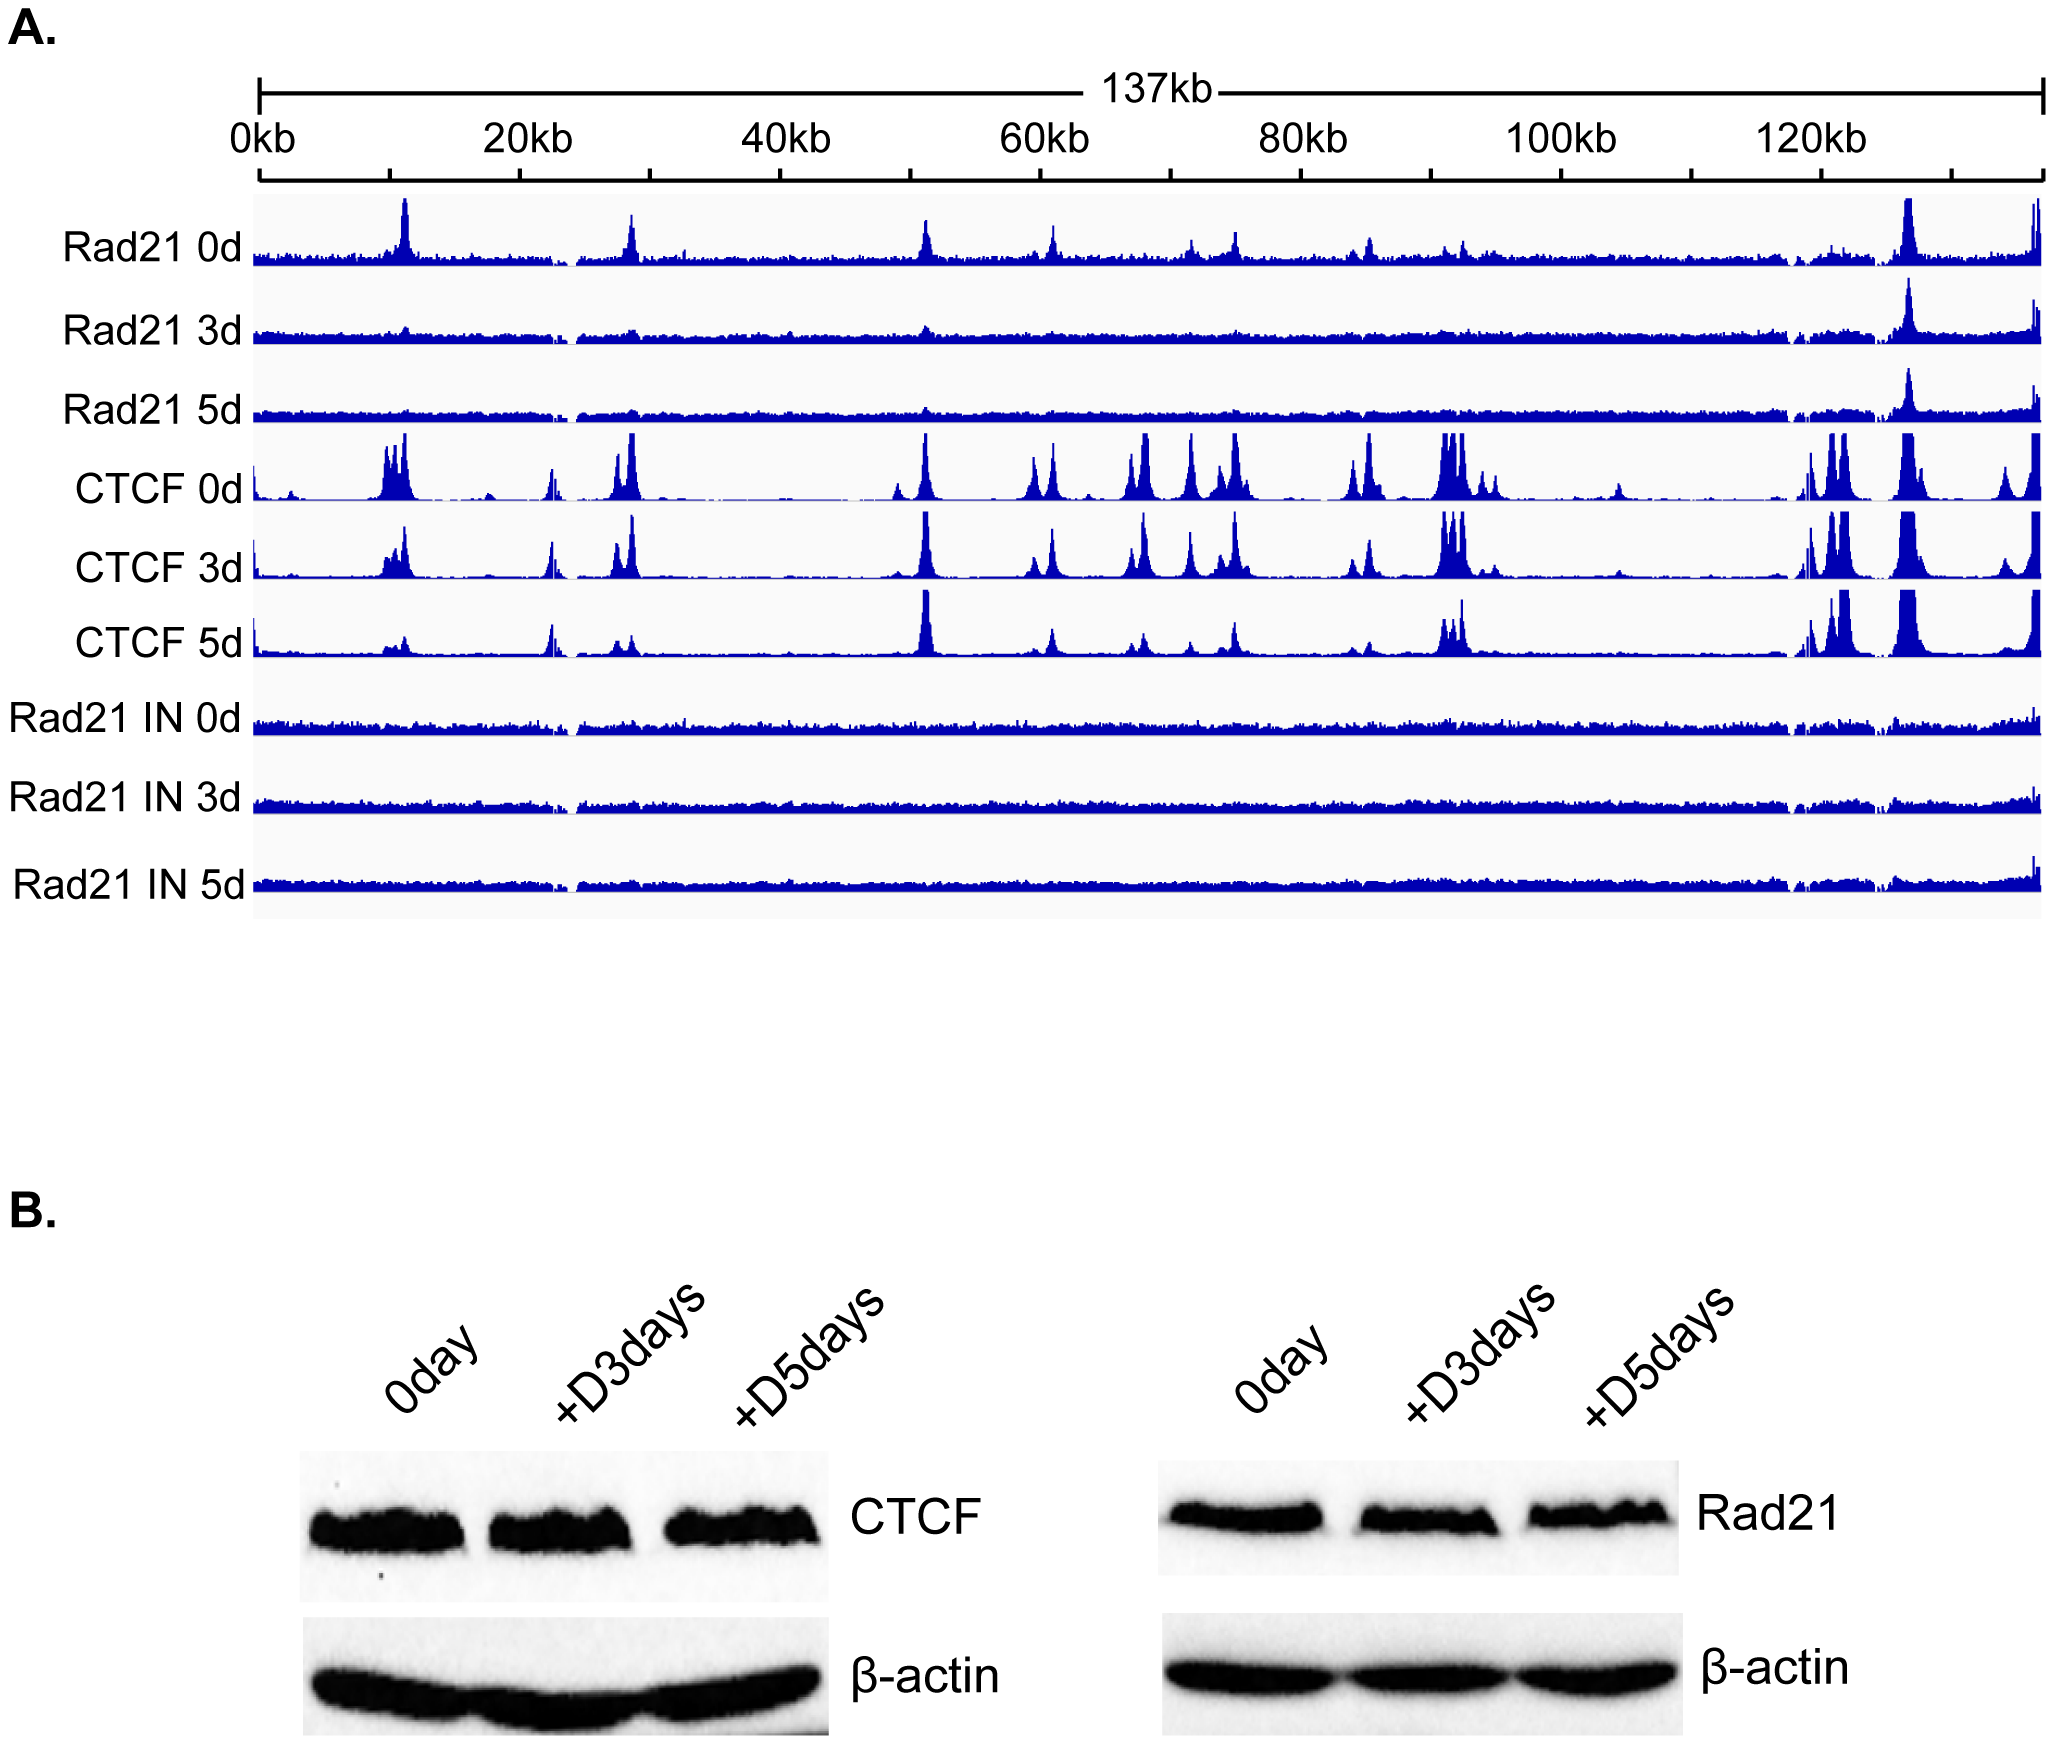 Changes in Rad21 binding to the KSHV genome during KSHV reactivation and lytic replication.